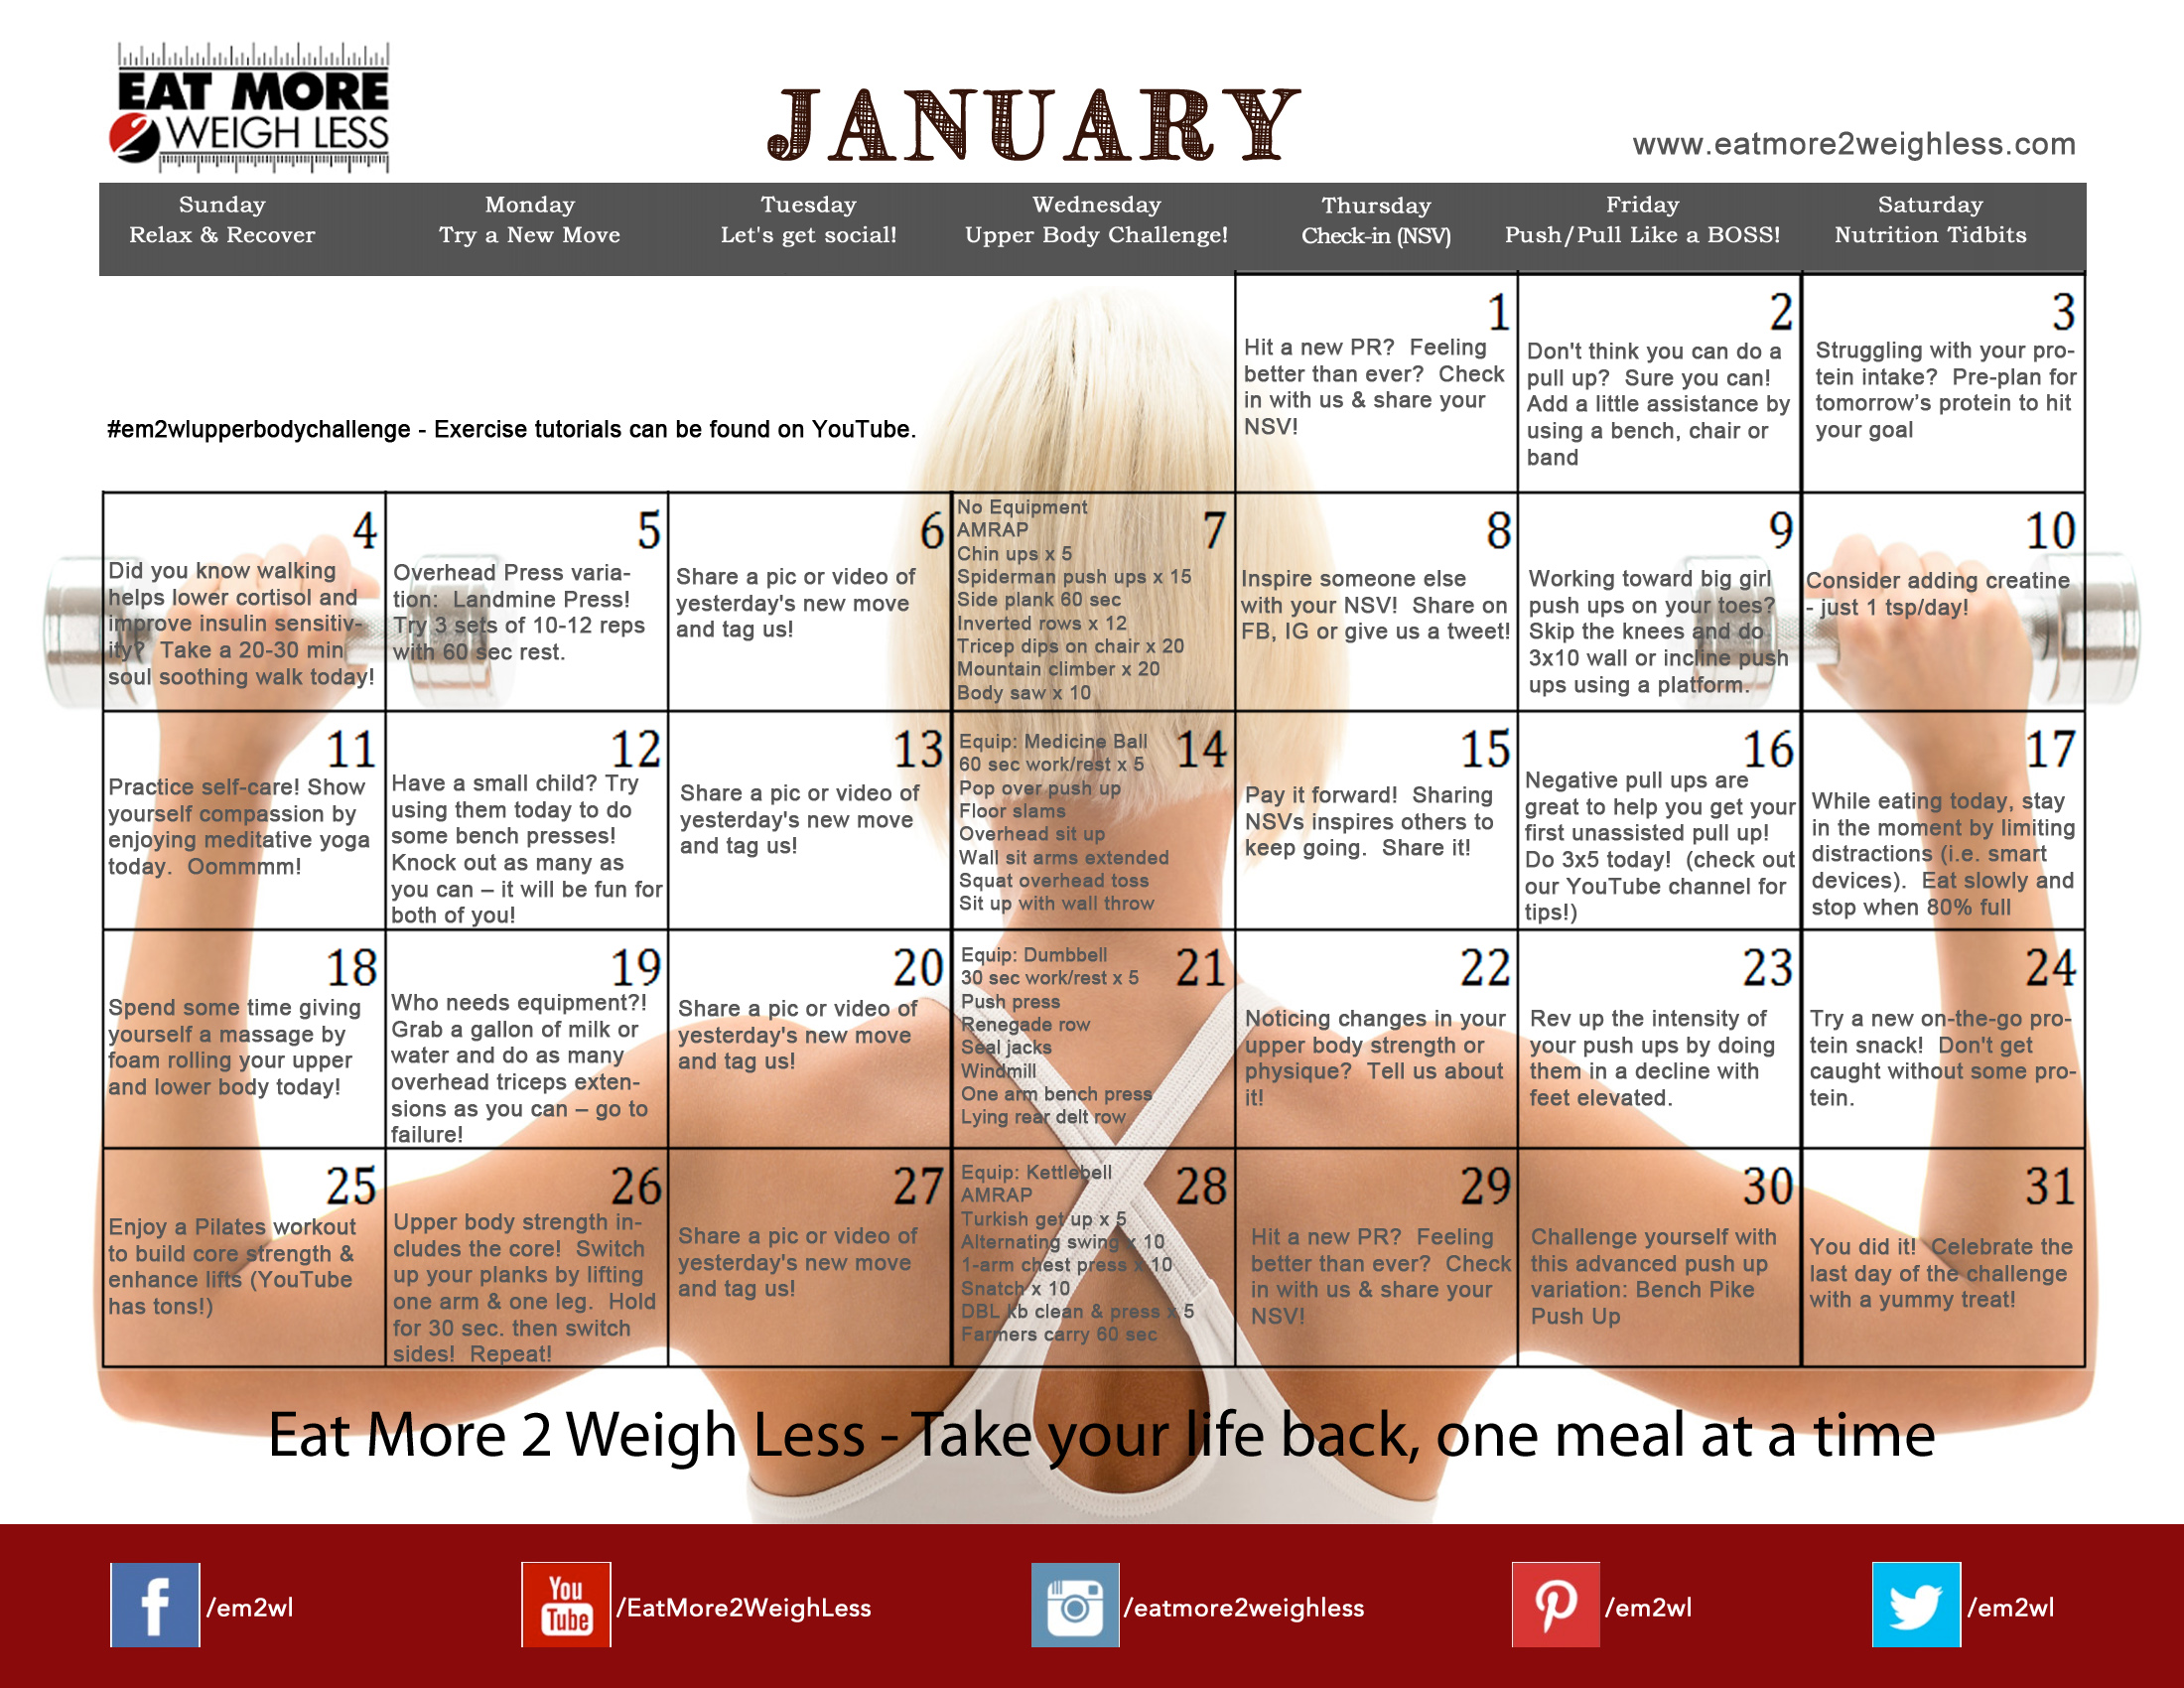 January 2015 Challenge: Building Upper Body Strength